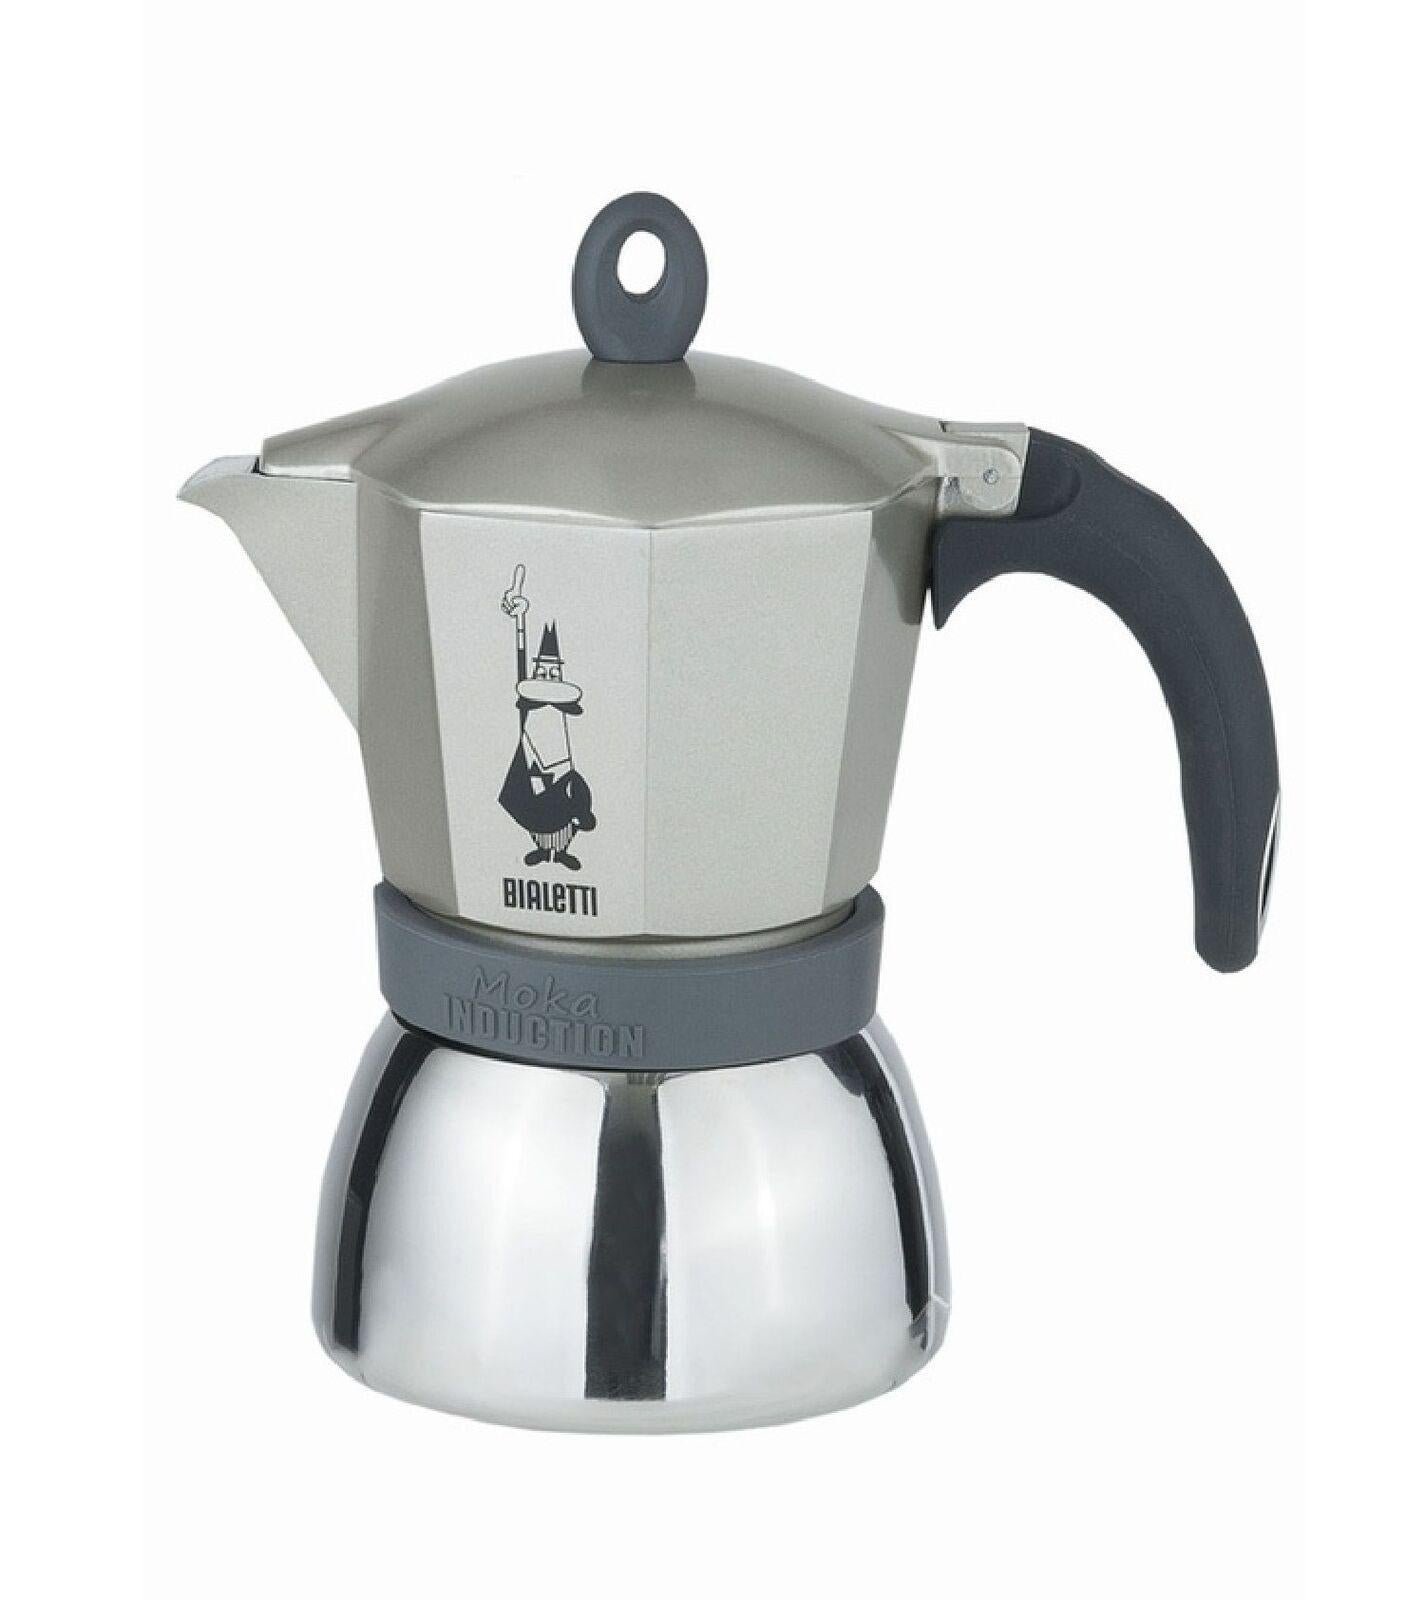 Bialetti Moka Aluminium Stainless Steel White Induction Suitable 3 Cups Stove Top Espresso Maker Coffee Tea Espresso Stovetop Coffee Makers